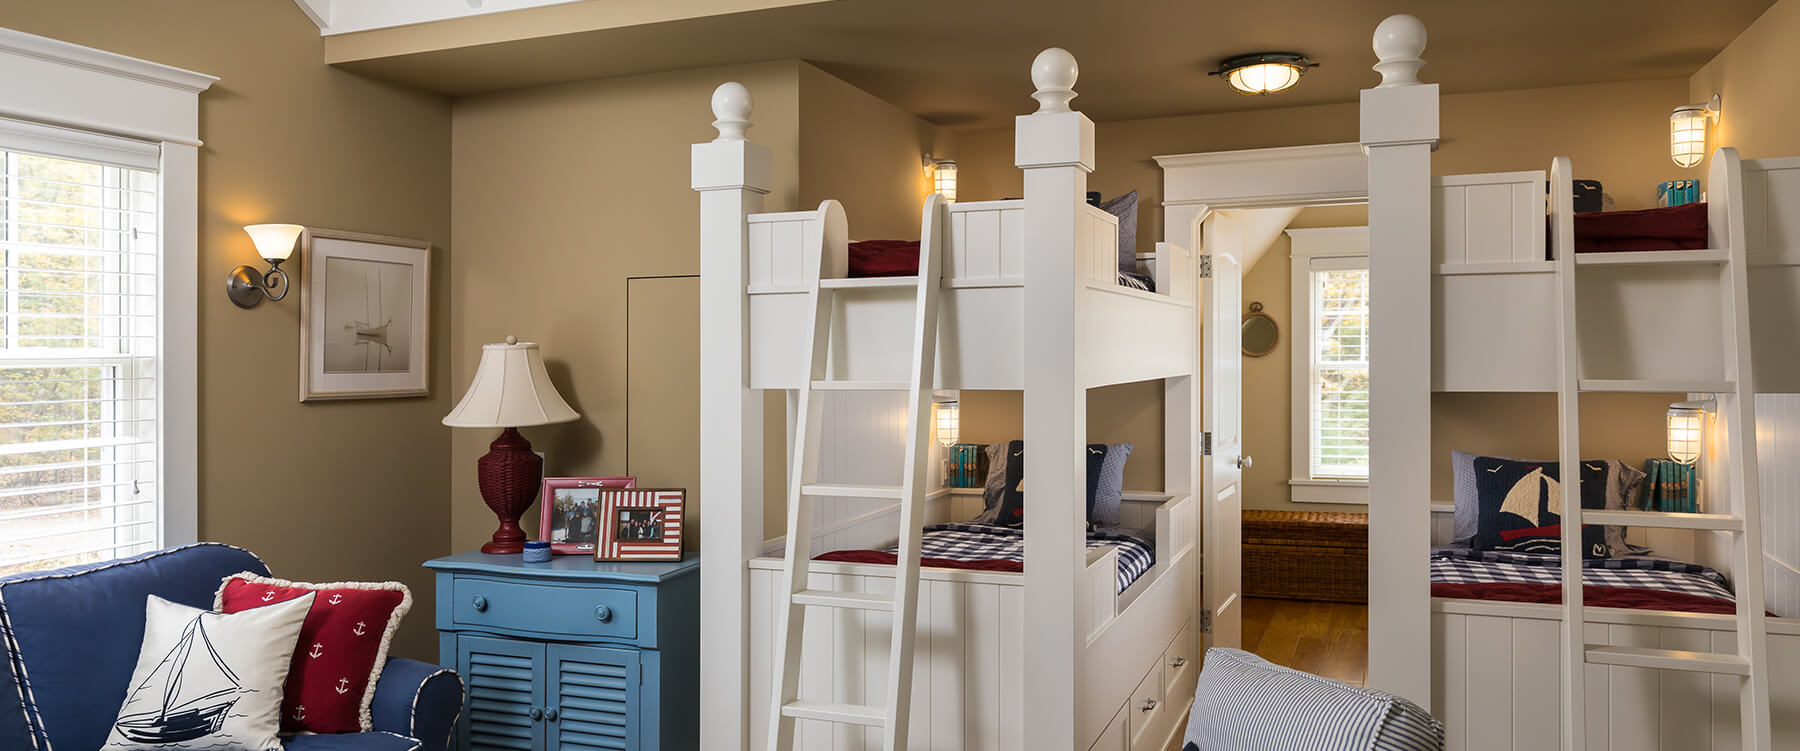 kids bunk bed room at shingle style cottage